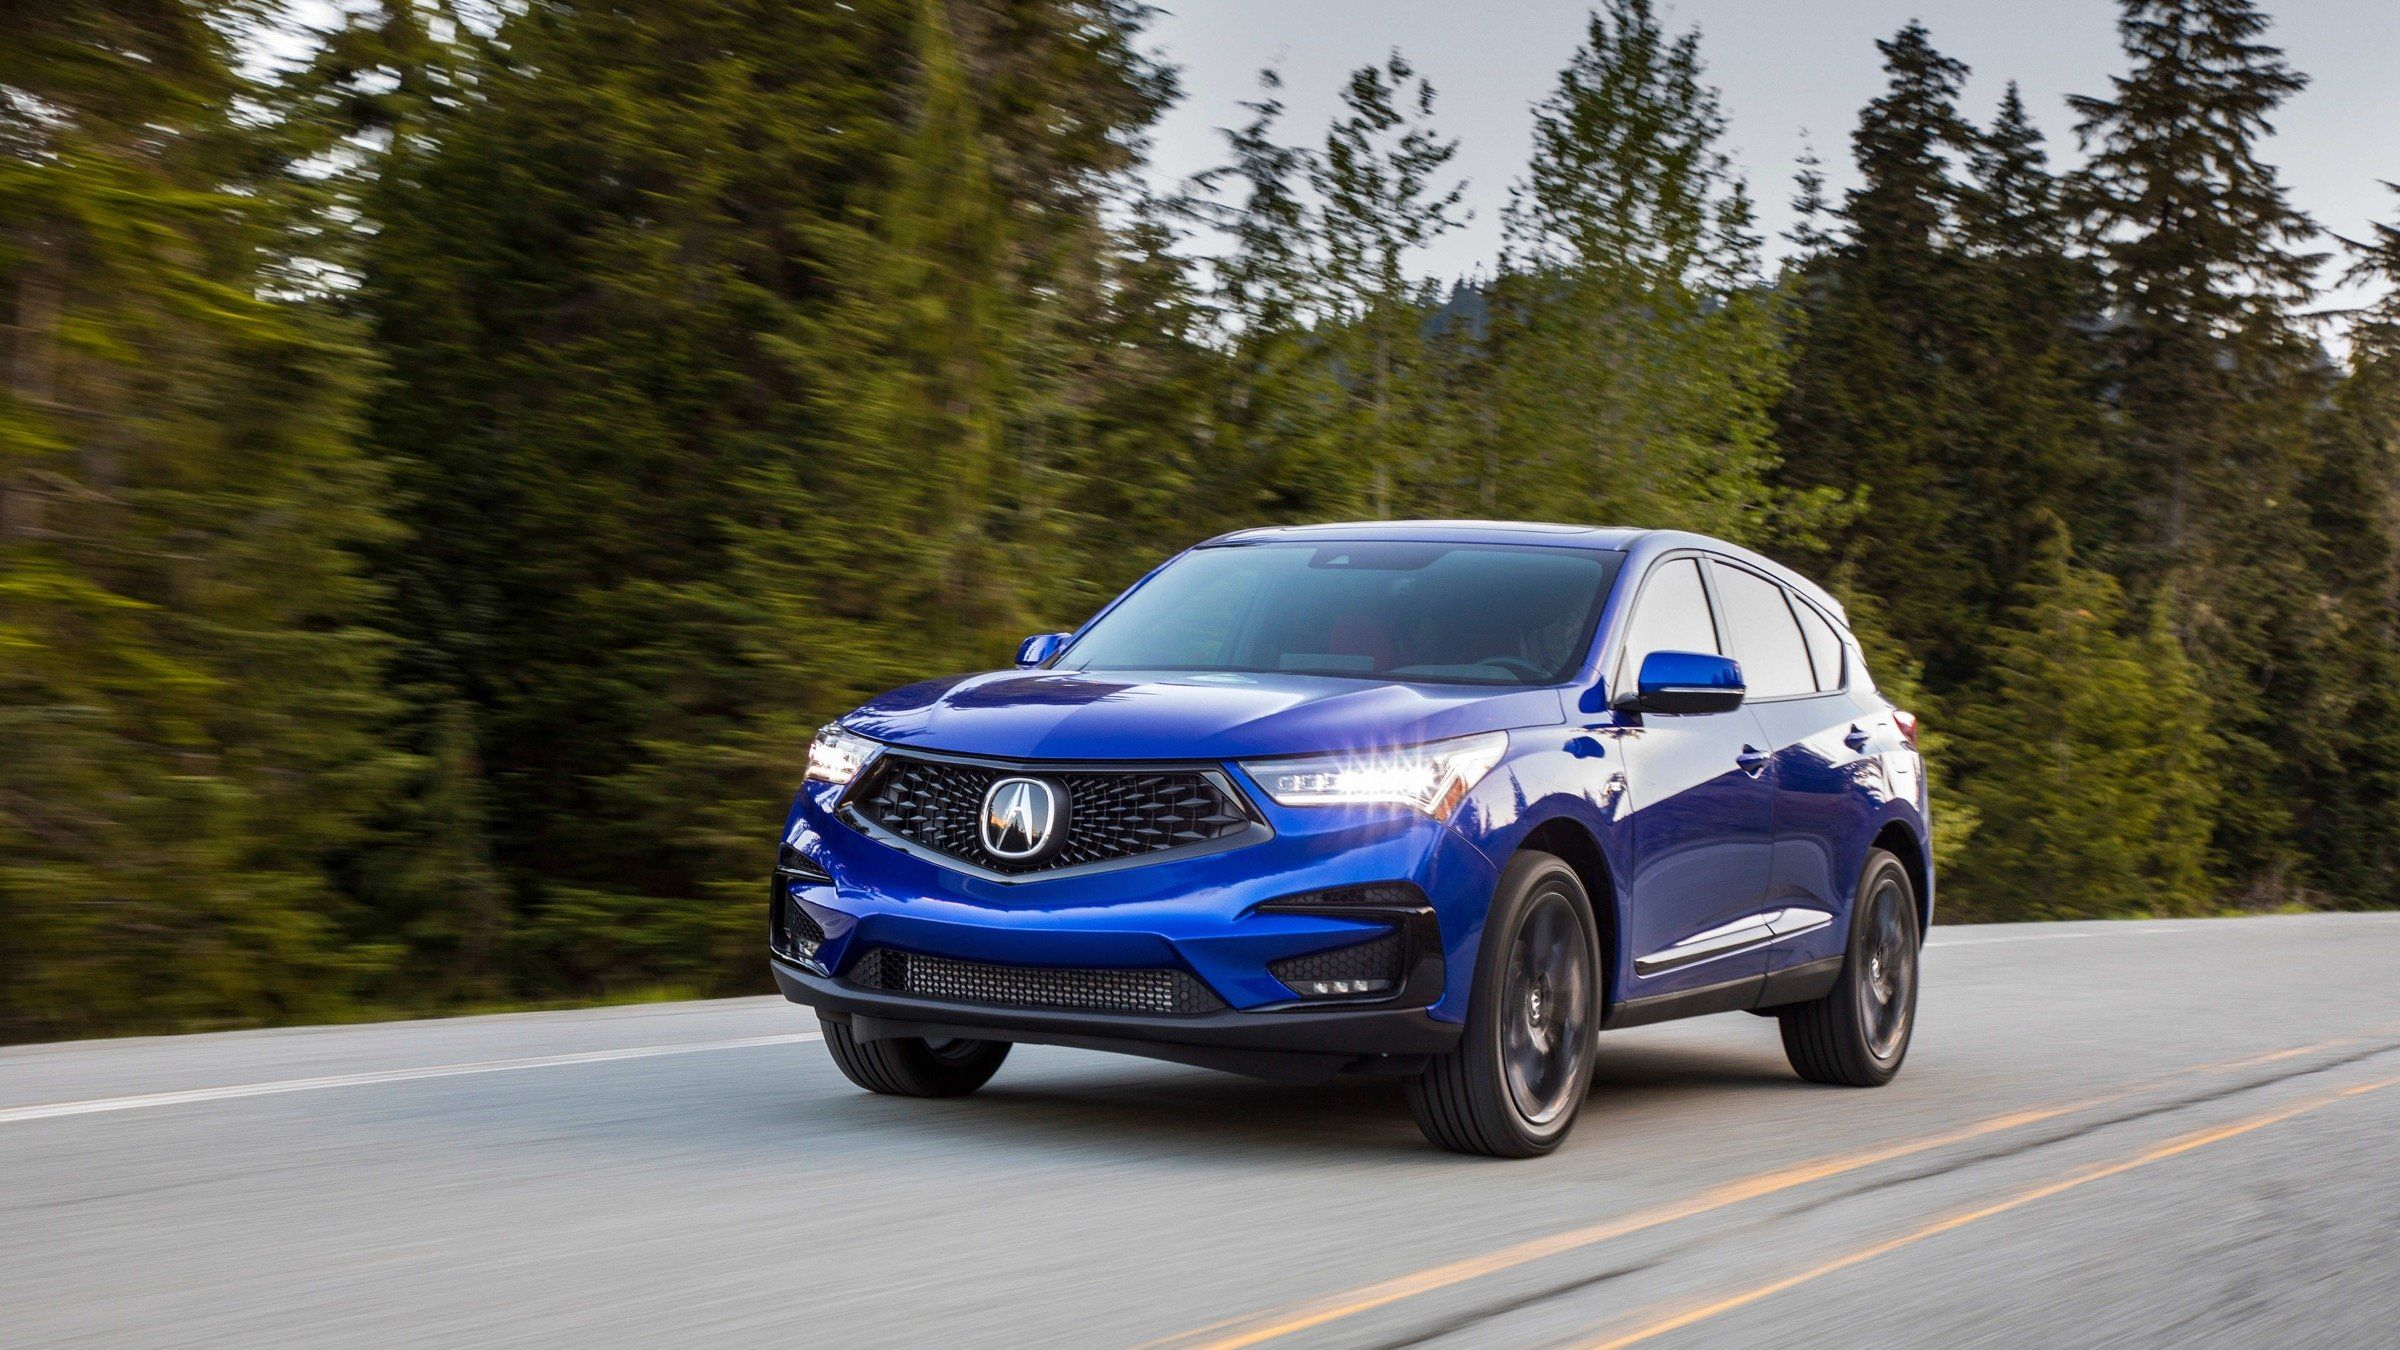 New When Does The 2020 Acura Rdx Come Out Specs From When Does The 2020 Acura Rdx Come Out Release Articles Acura Rdx Acura Acura Cars